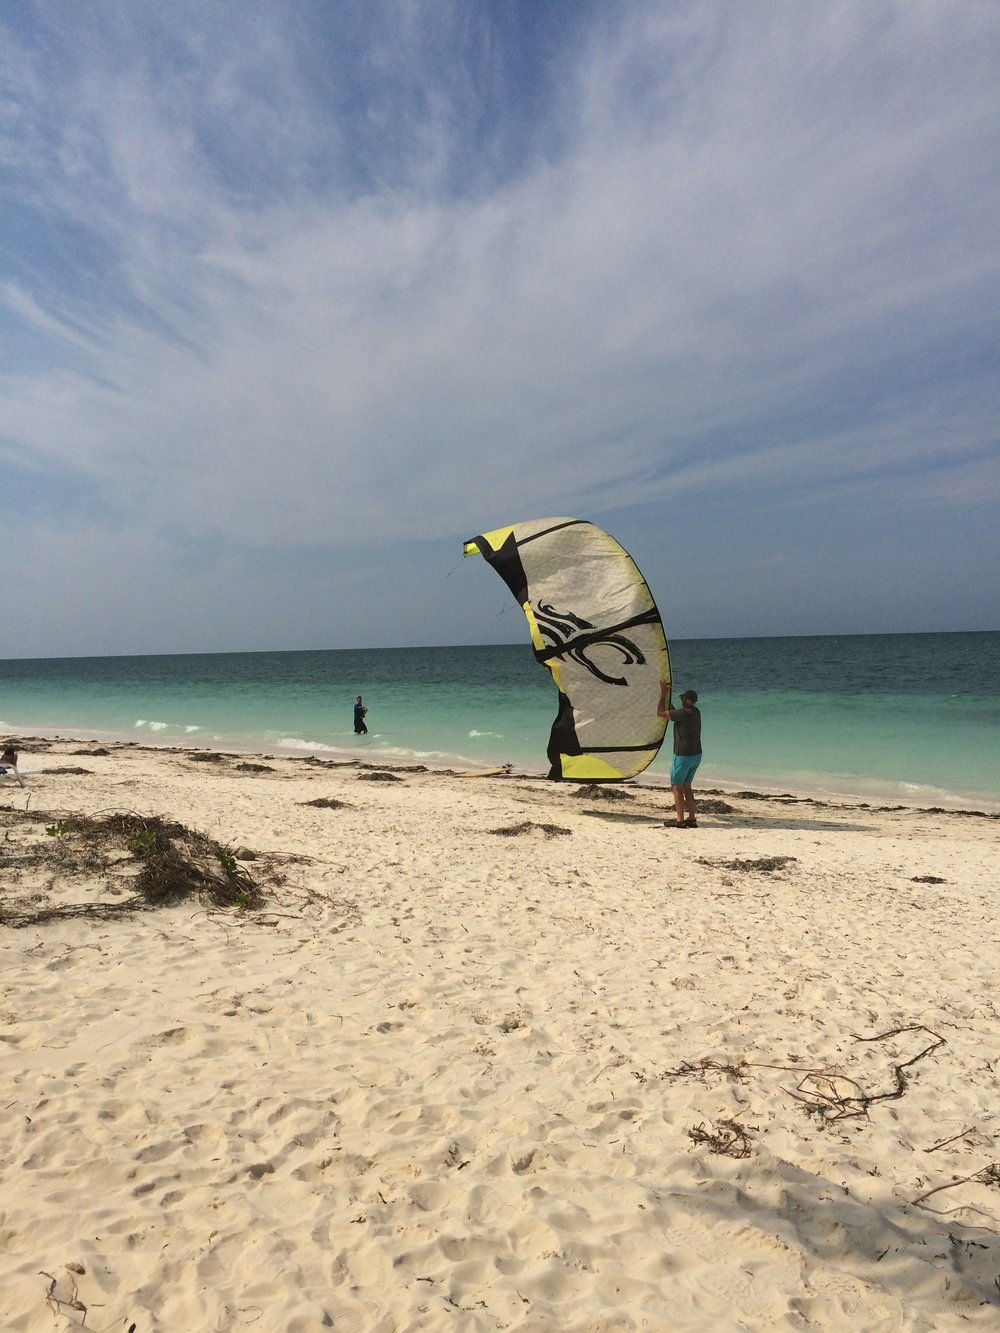 My husband launches his kiteboarding off the sandy beaches on Cayo Levisa.